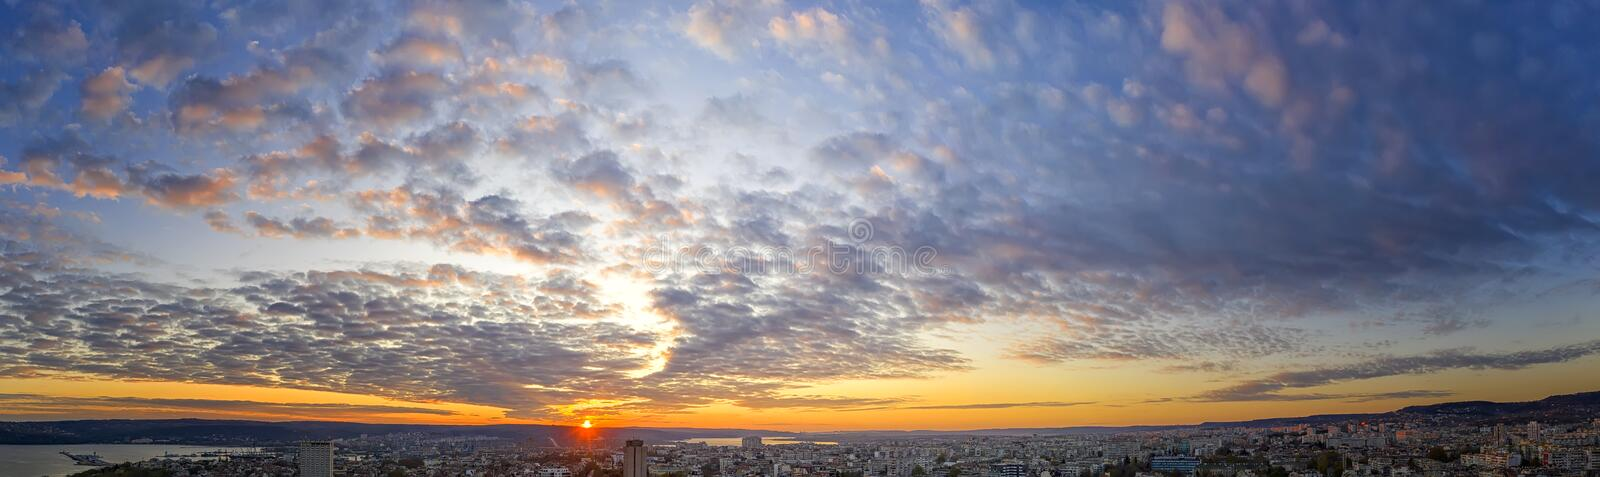 Amazing scenic view of the colorful sky with the sun over the city. Panoramic view from a drone stock photos